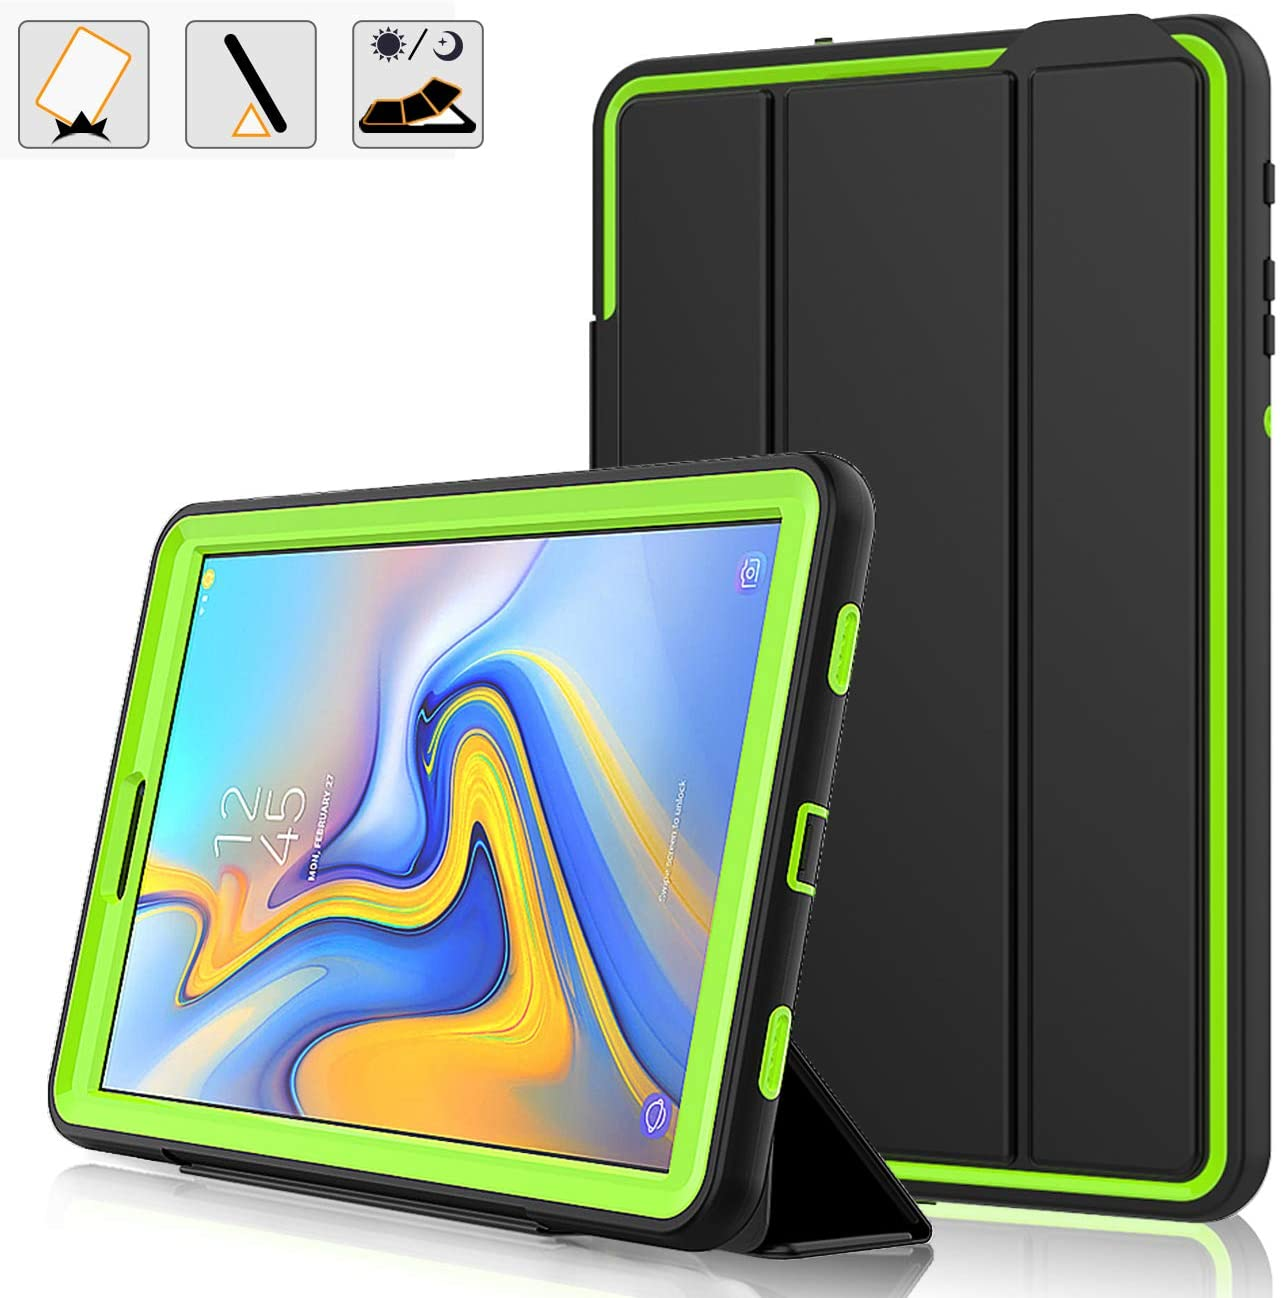 DAORANGE Case for Samsung Galaxy Tab A 10.5 2018 Model T590/T595, Smart Case [Detachable Cover] with Auto Sleep/Wake,Drop Protection Rugged Heavy Case for Galaxy Tab A 10.5 Inch 2018 (Black+Green)